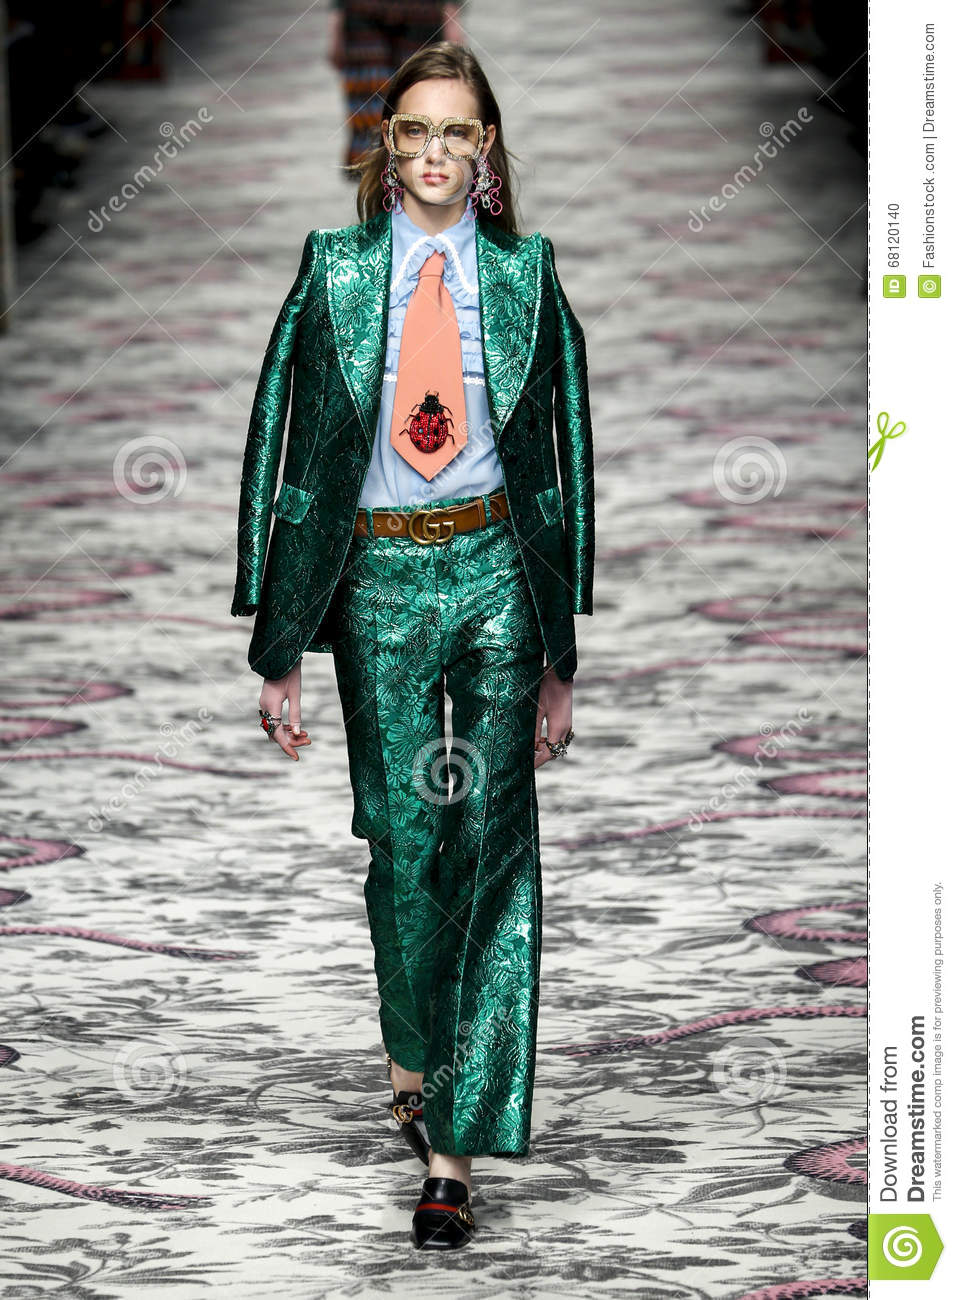 606963134f5225 MILAN, ITALY - SEPTEMBER 23: A model walks the runway during the Gucci show  as a part of Milan Fashion Week Spring/Summer 2016 on September 23, ...